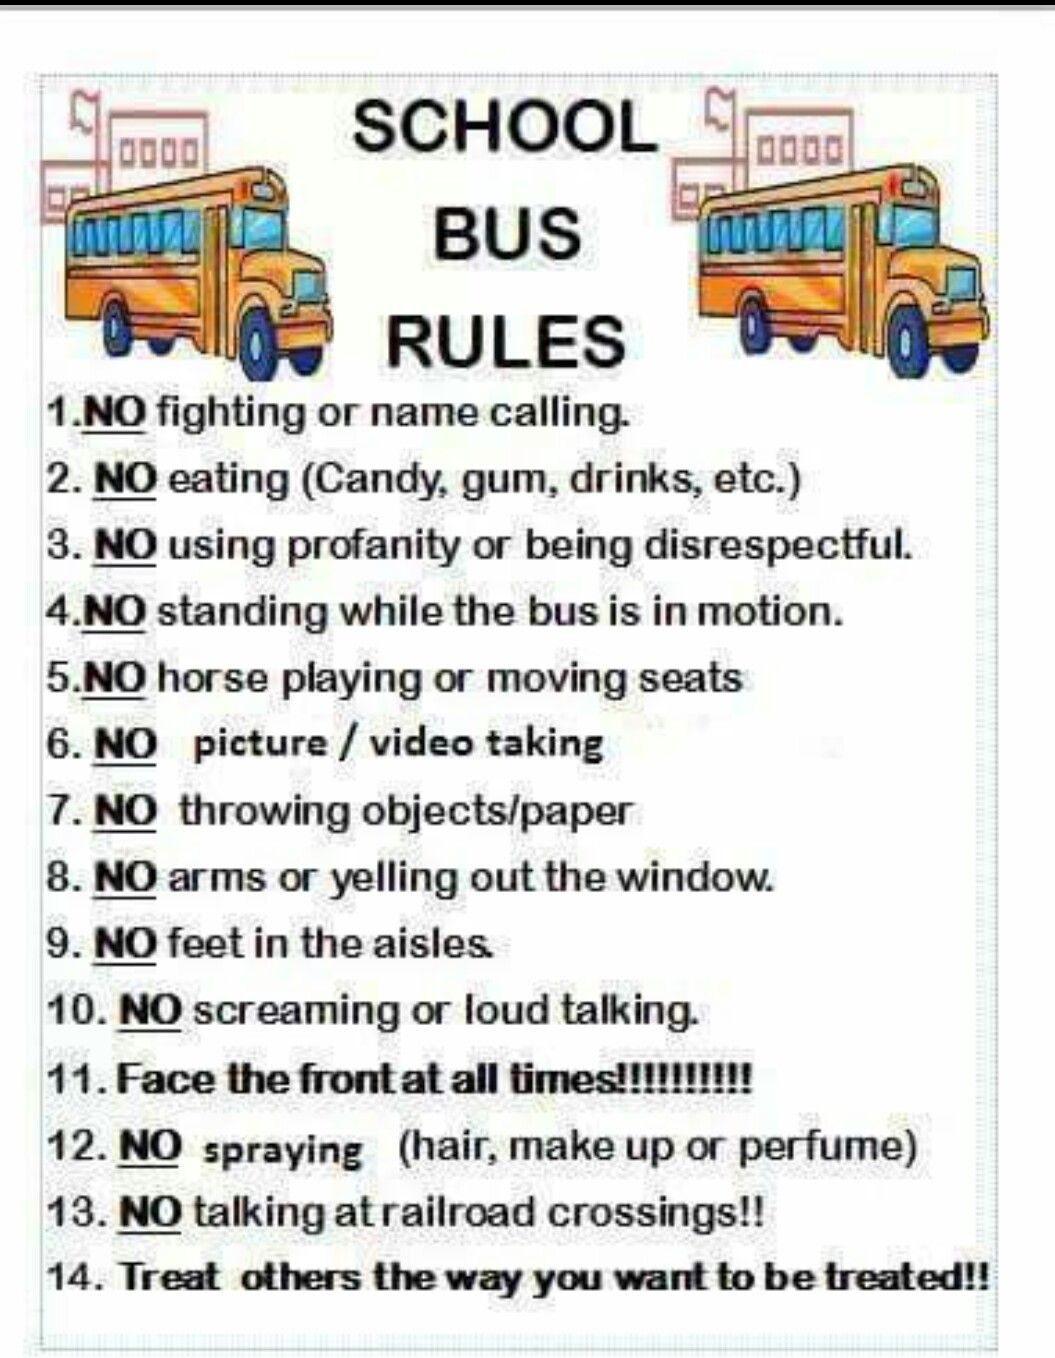 School bus rules School bus safety, School bus driving